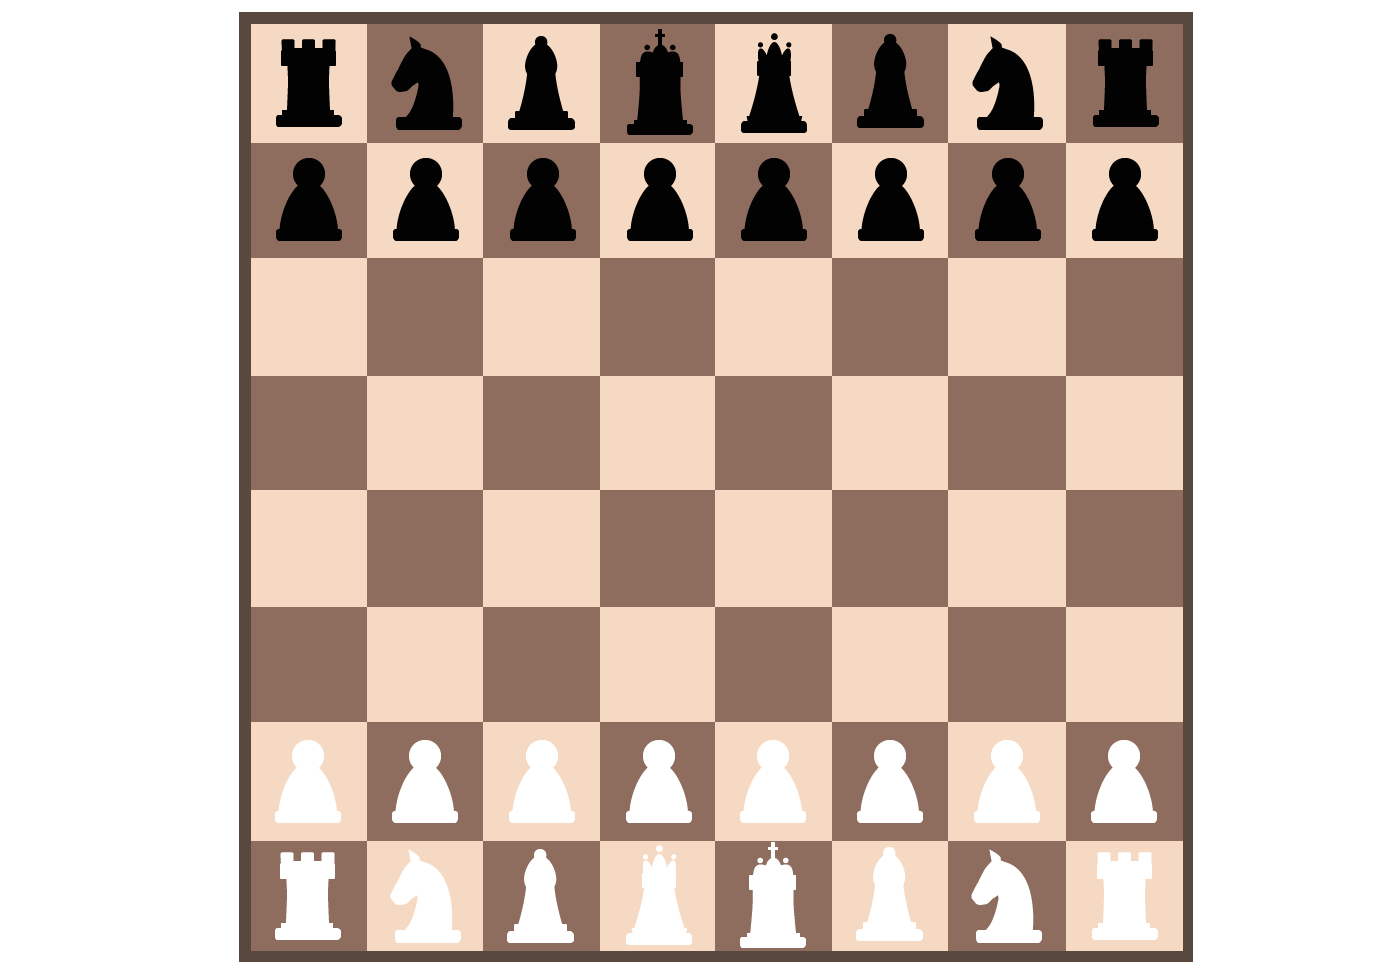 free illustration chessboard render - photo #11